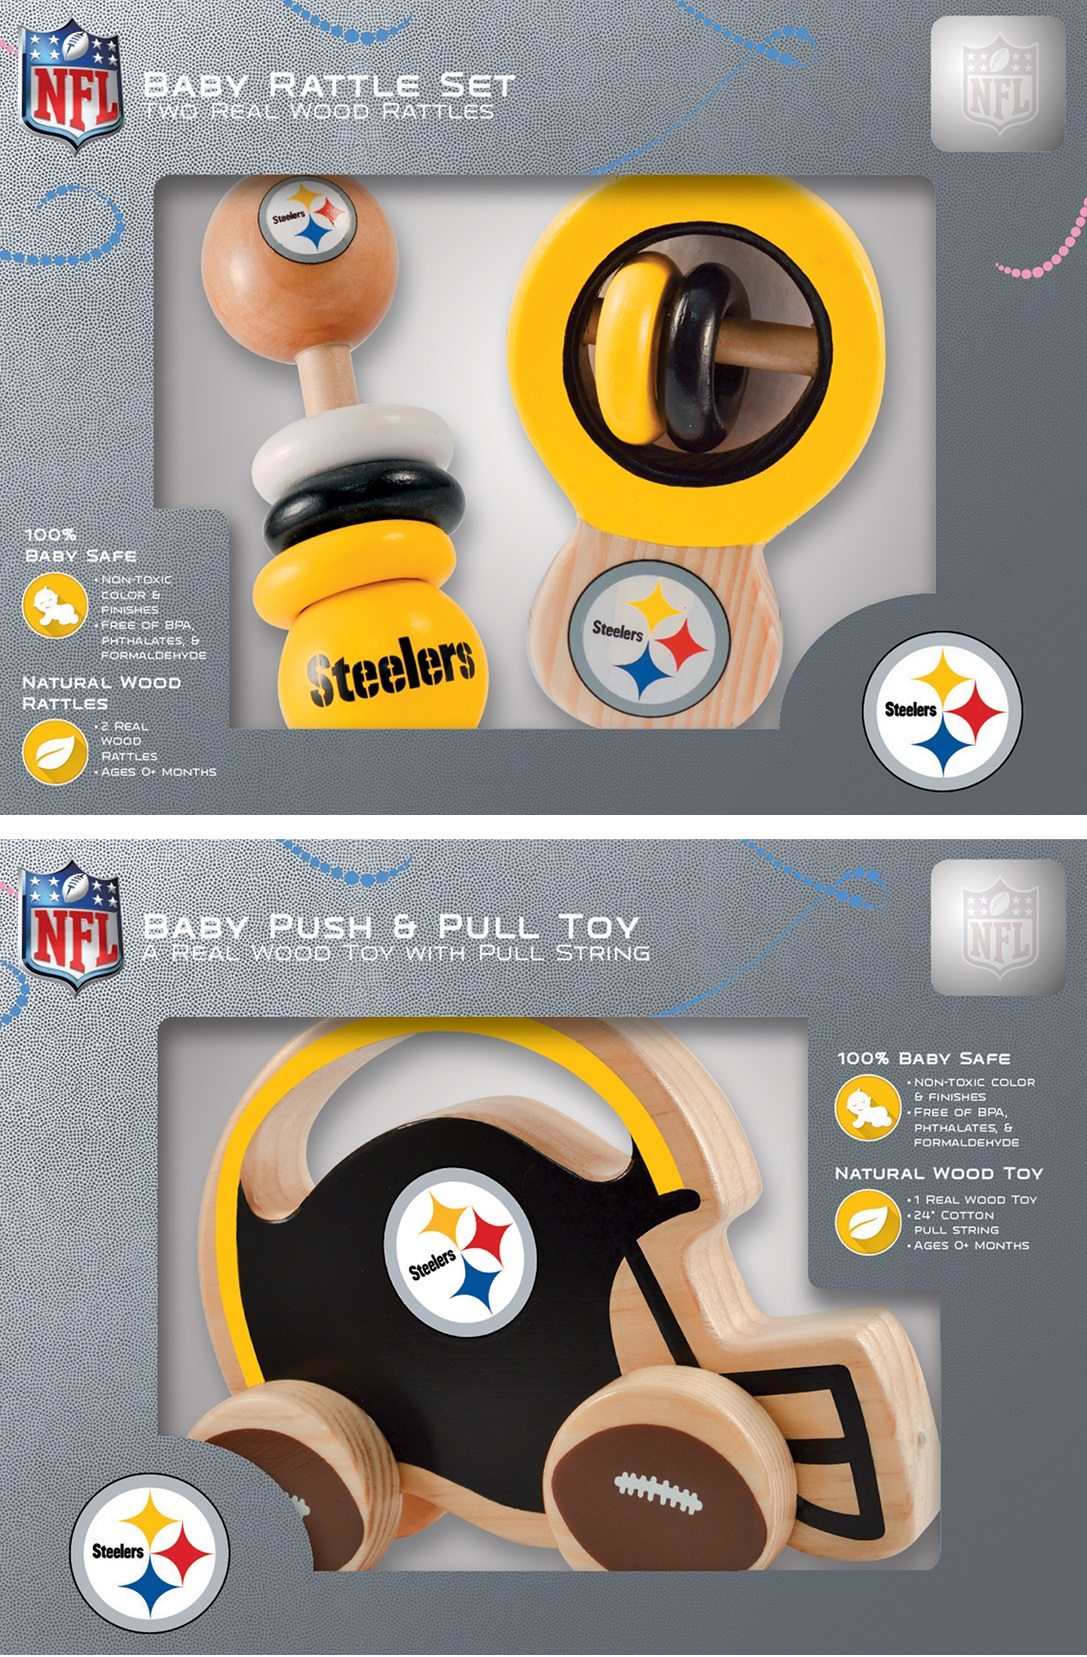 pittsburgh-steelers-baby-rattle-push-toy-set.jpg